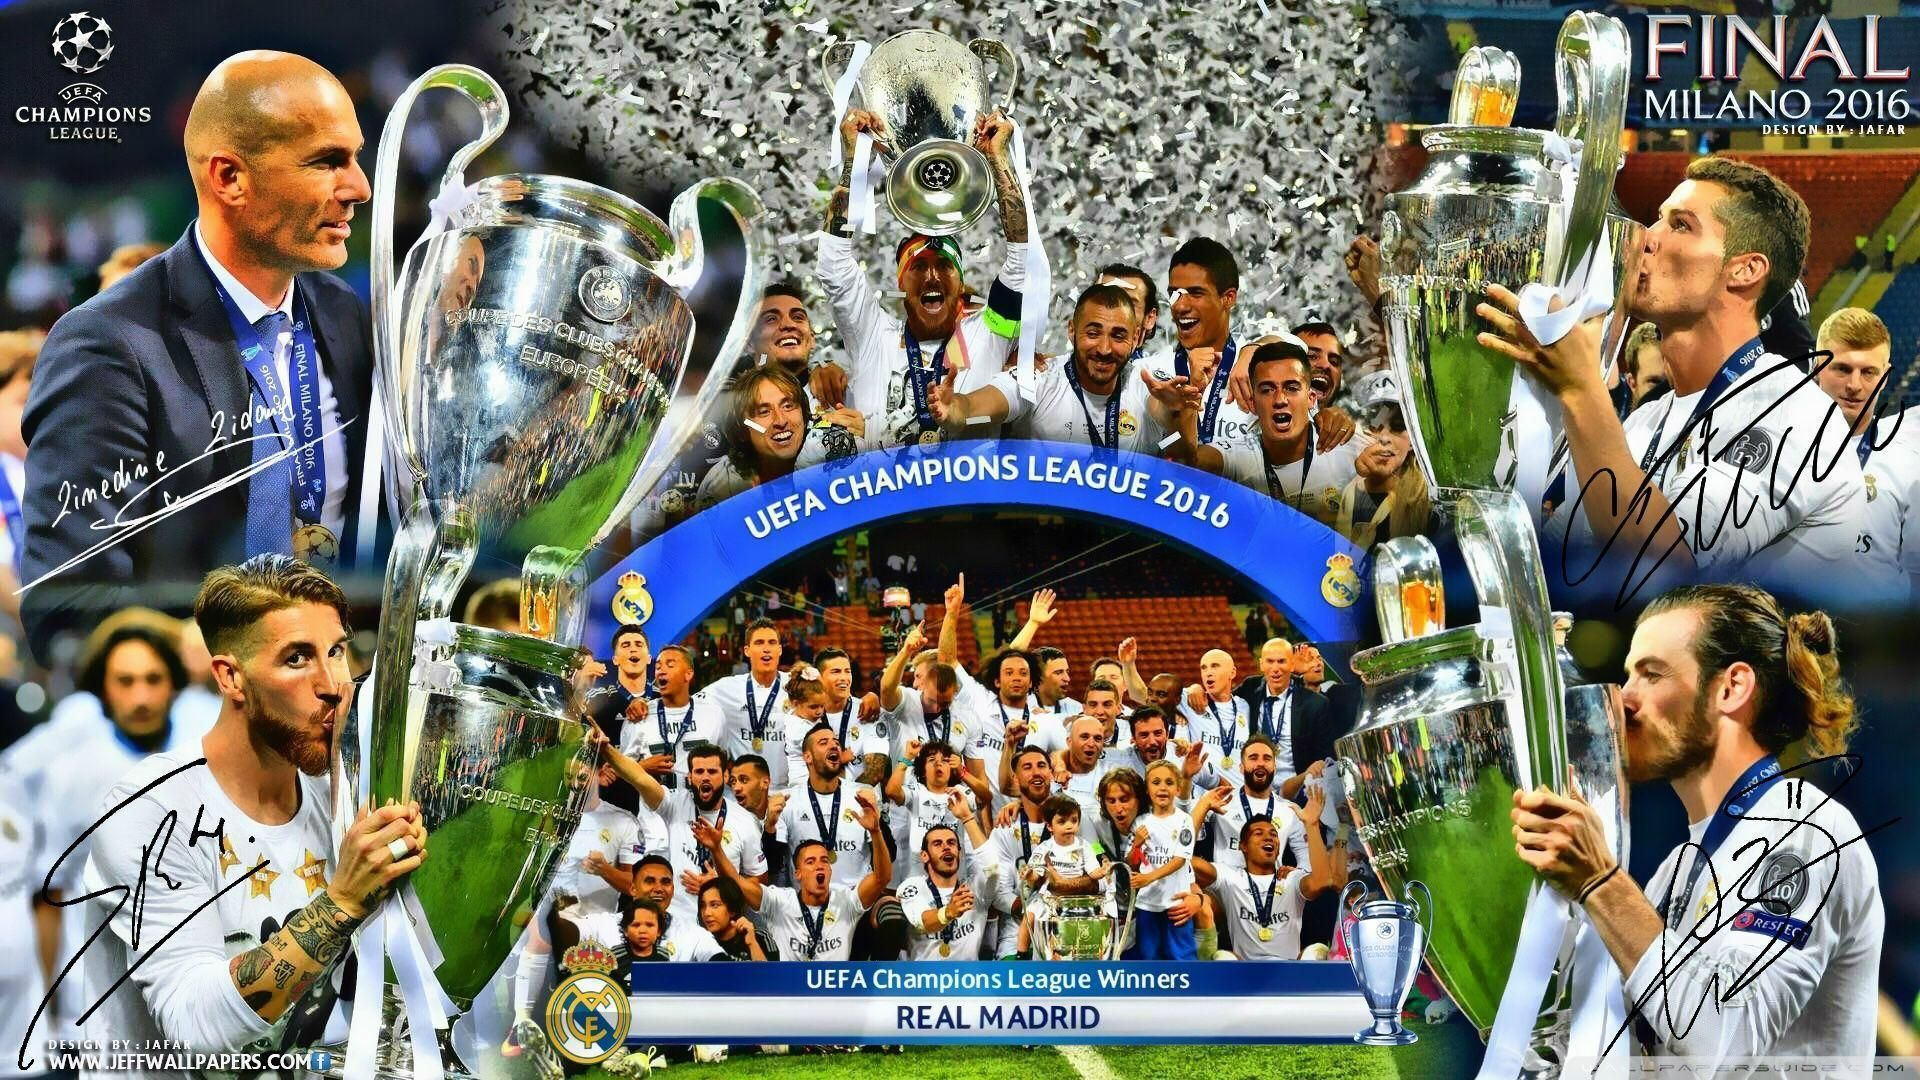 Real Madrid Wallpaper Equipo 2018 Hd Football In 2020 Real Madrid Wallpapers Madrid Wallpaper Real Madrid Champions League